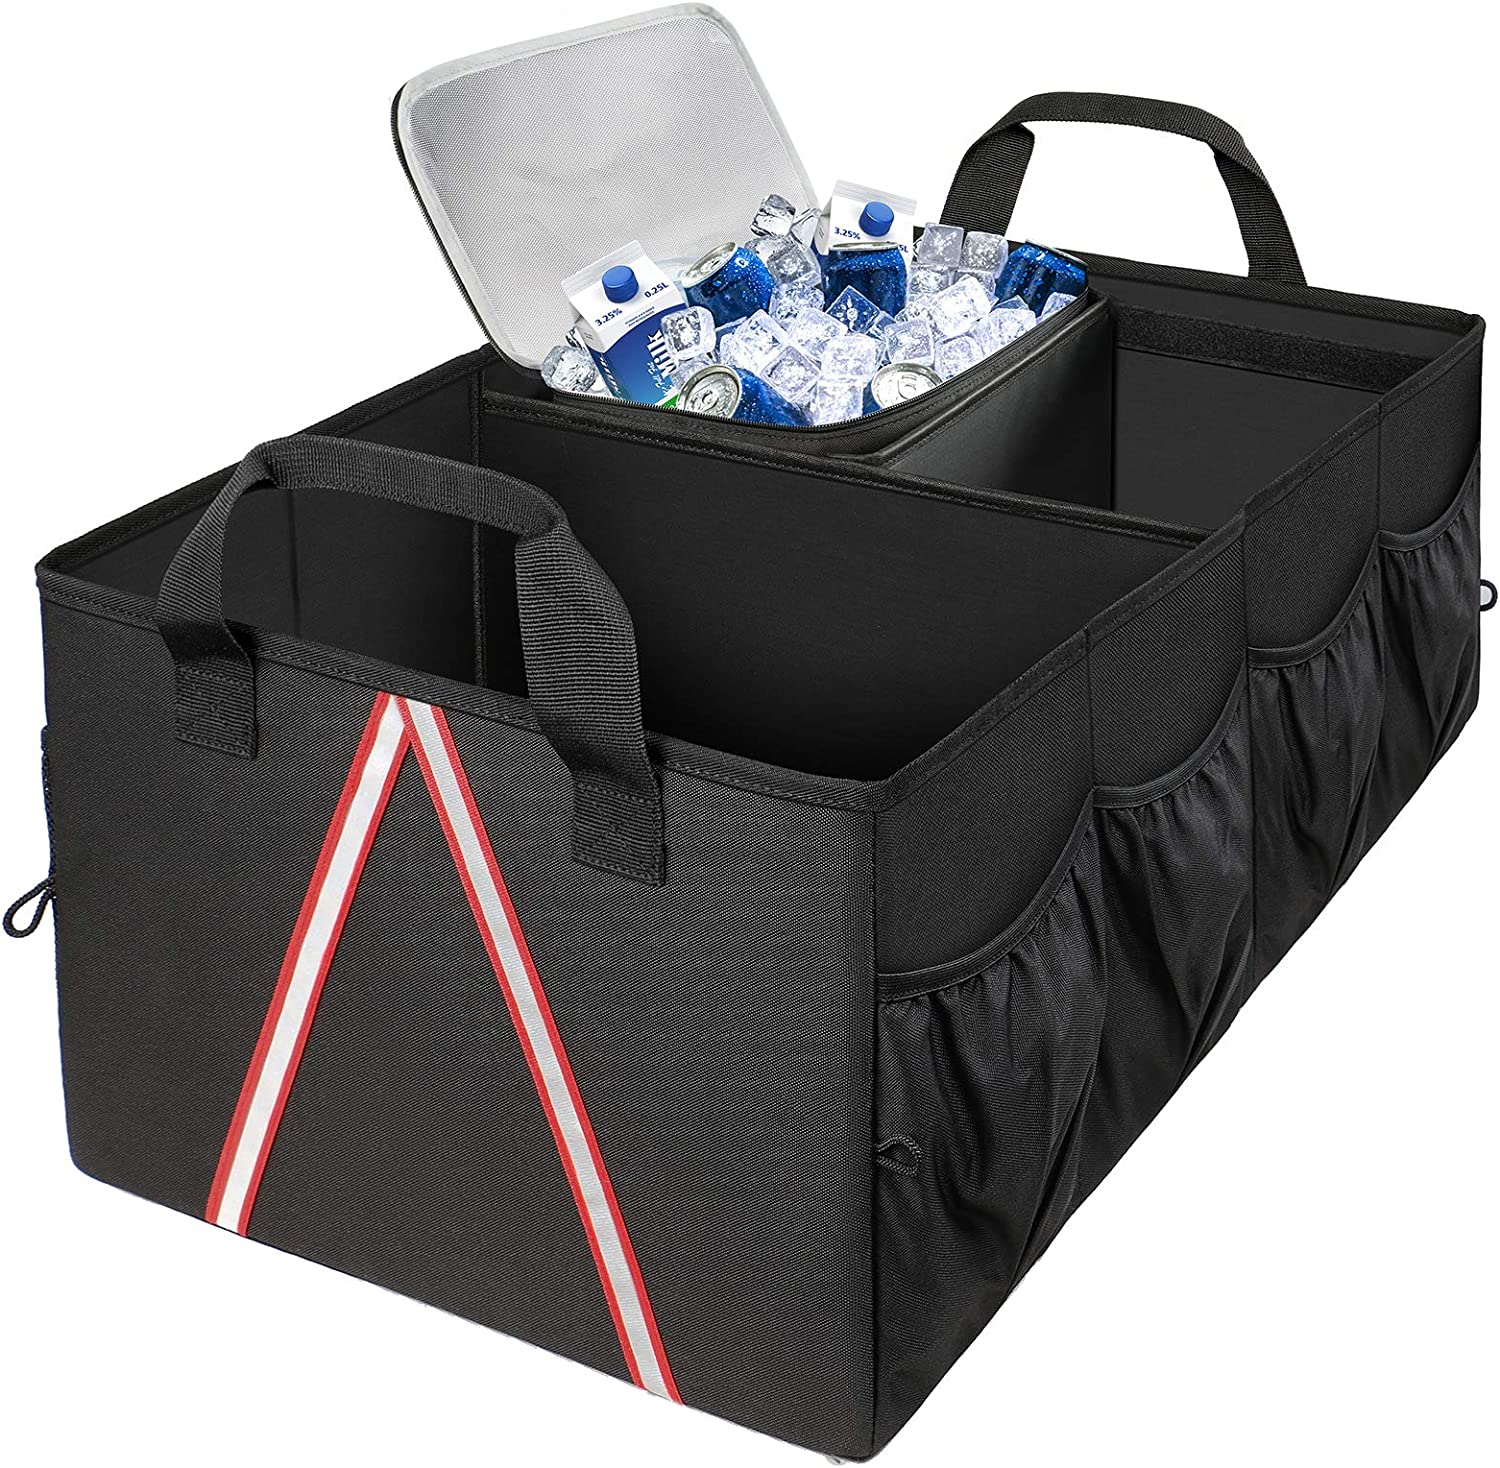 Car Trunk Organizer, Large Cargo SUV Trunk Organizer with Cooler and Pockets, Expendable Car Organizers and Storage Bag for Groceries Accessory for Women, Suit Any Vehicle Sedan Caddy SUV, Black